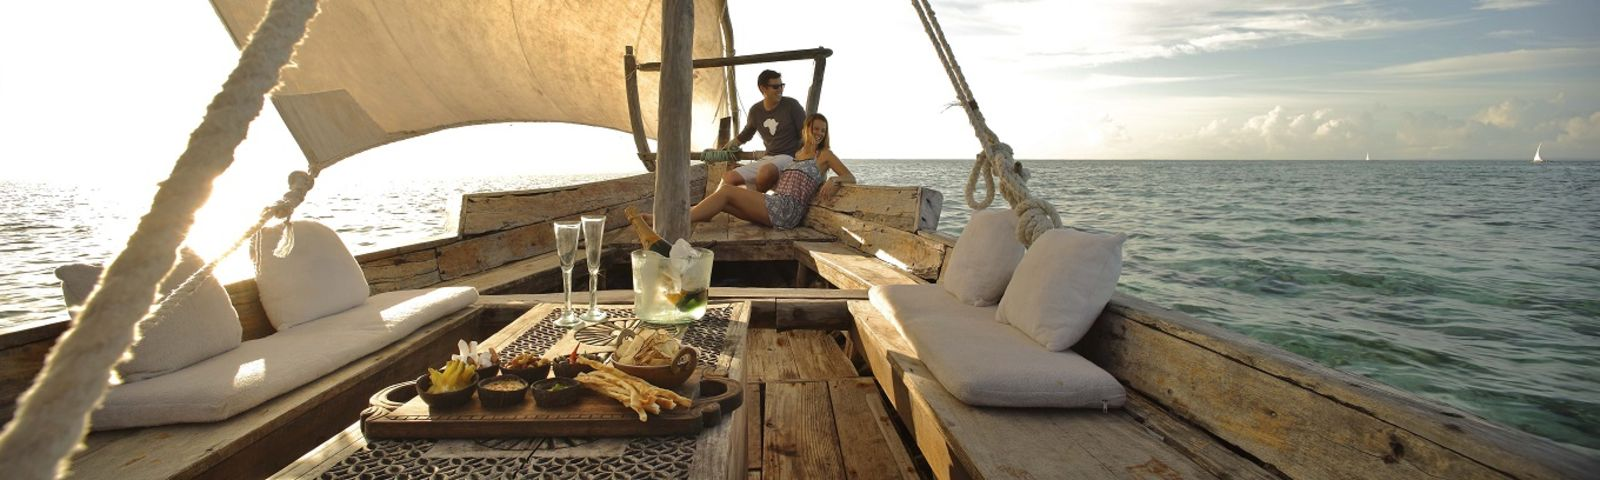 Boat riding and dinning in Tanzania